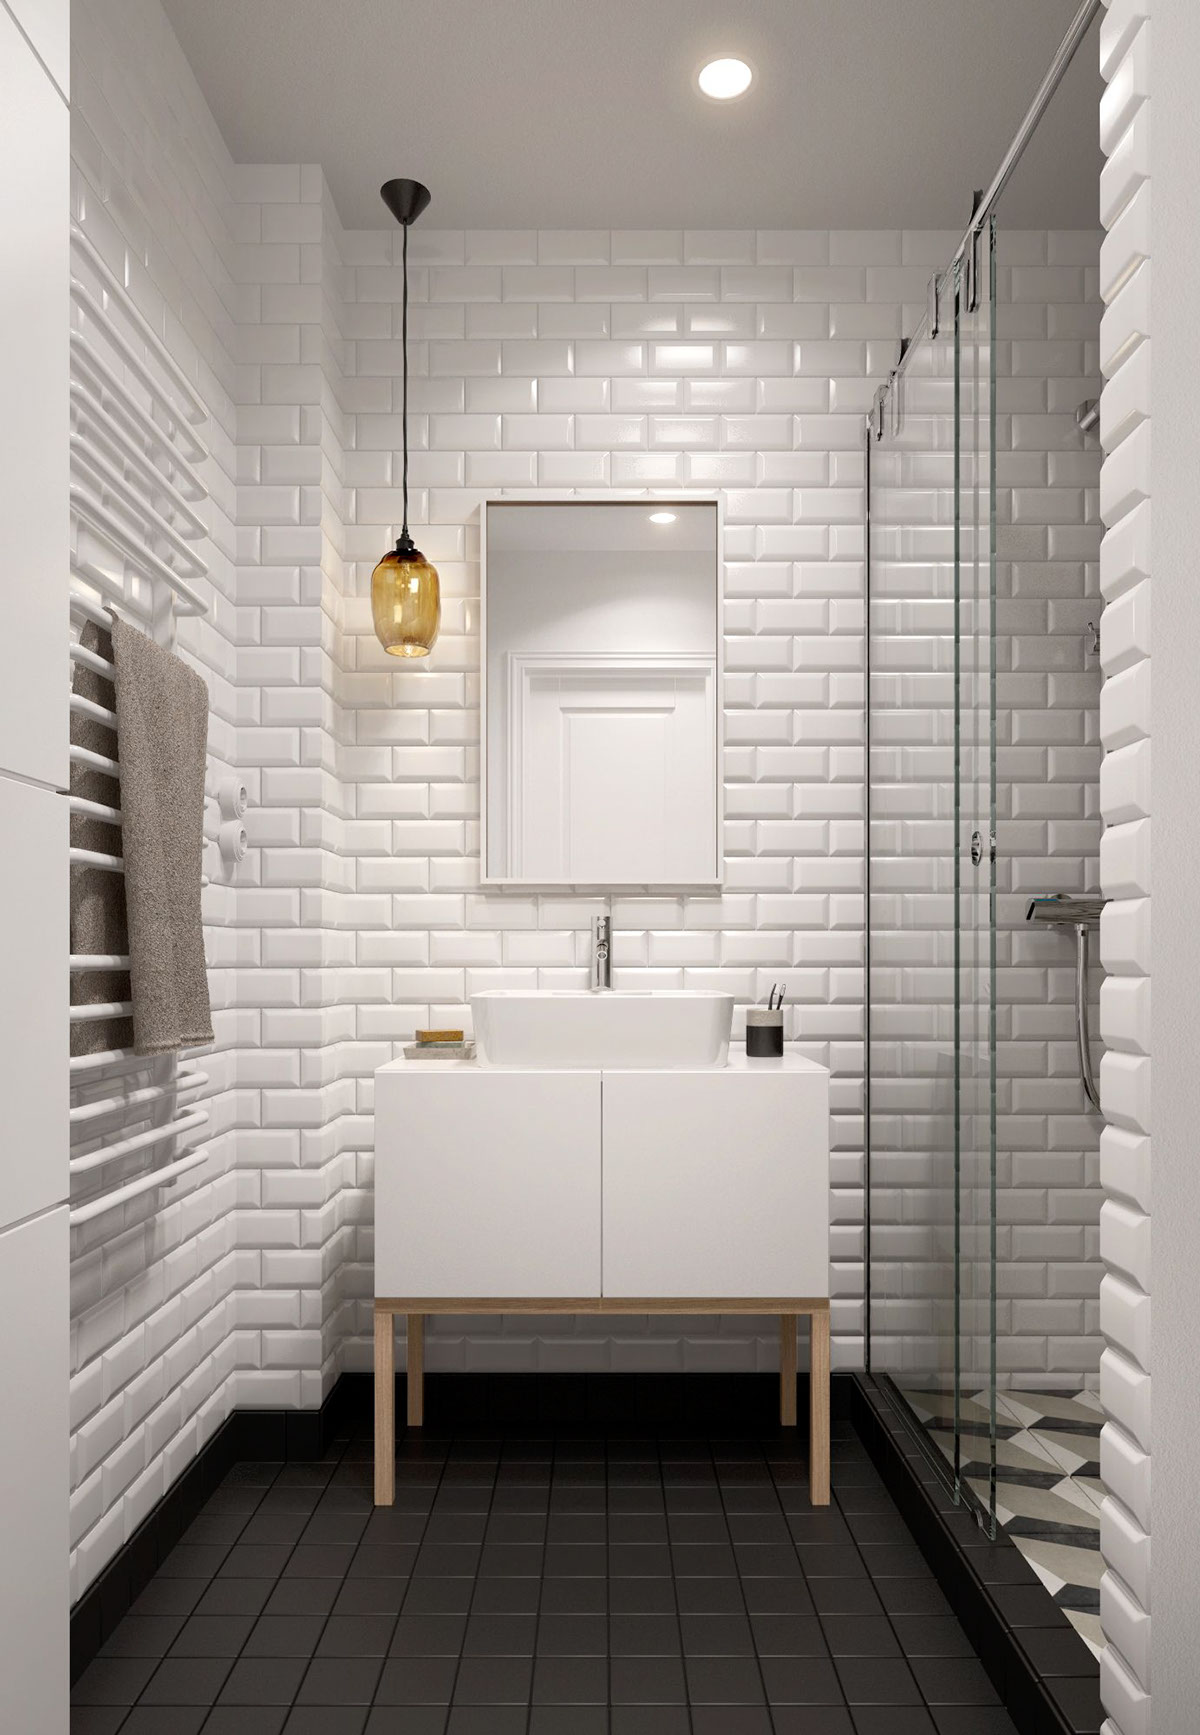 White Tile Bathroom Whitetilebathroom  Interior Design Ideas.